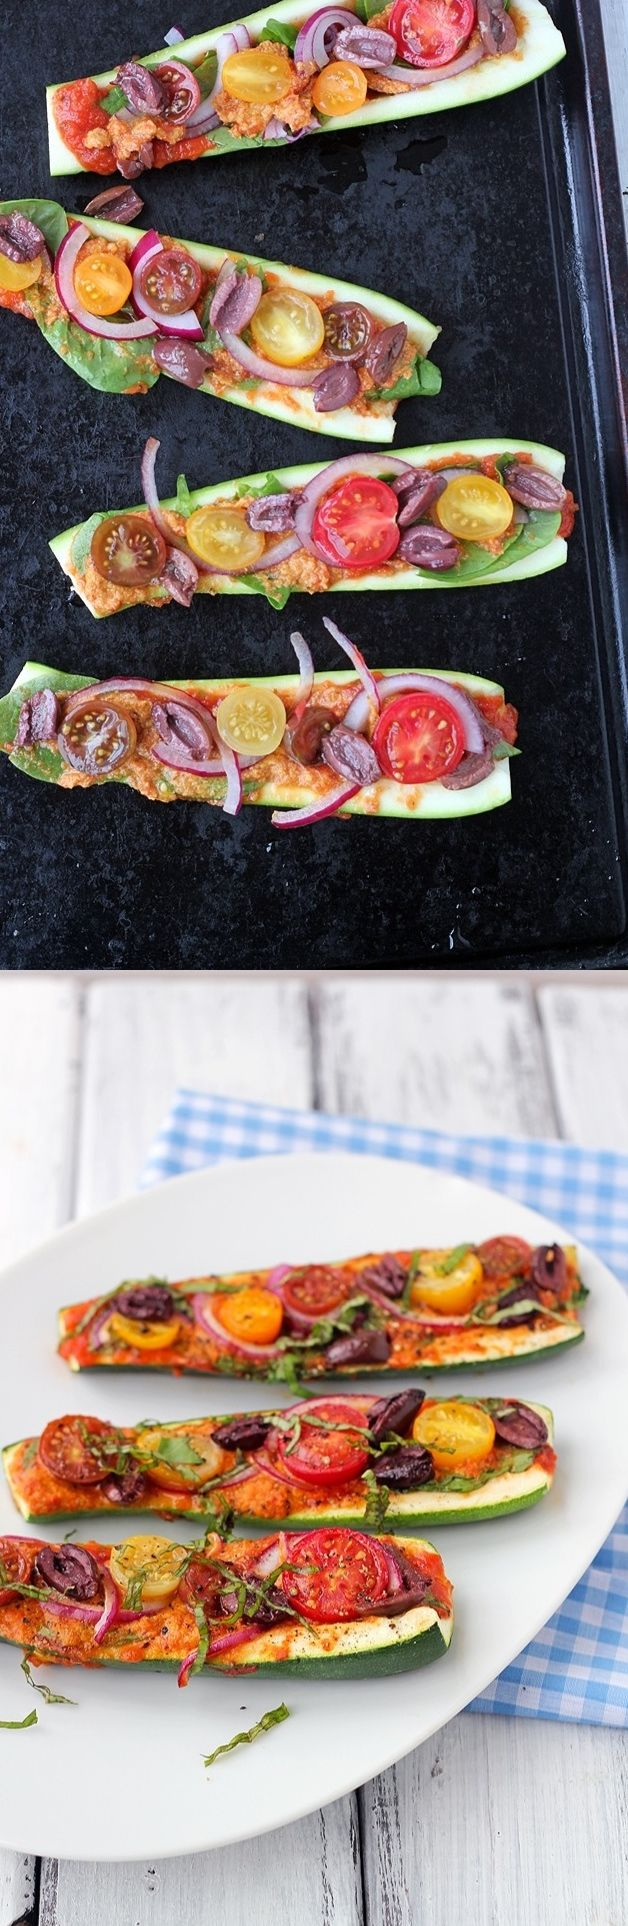 Zucchini Pizza Boats: A delicious, easy to prepare and healthy pizza.